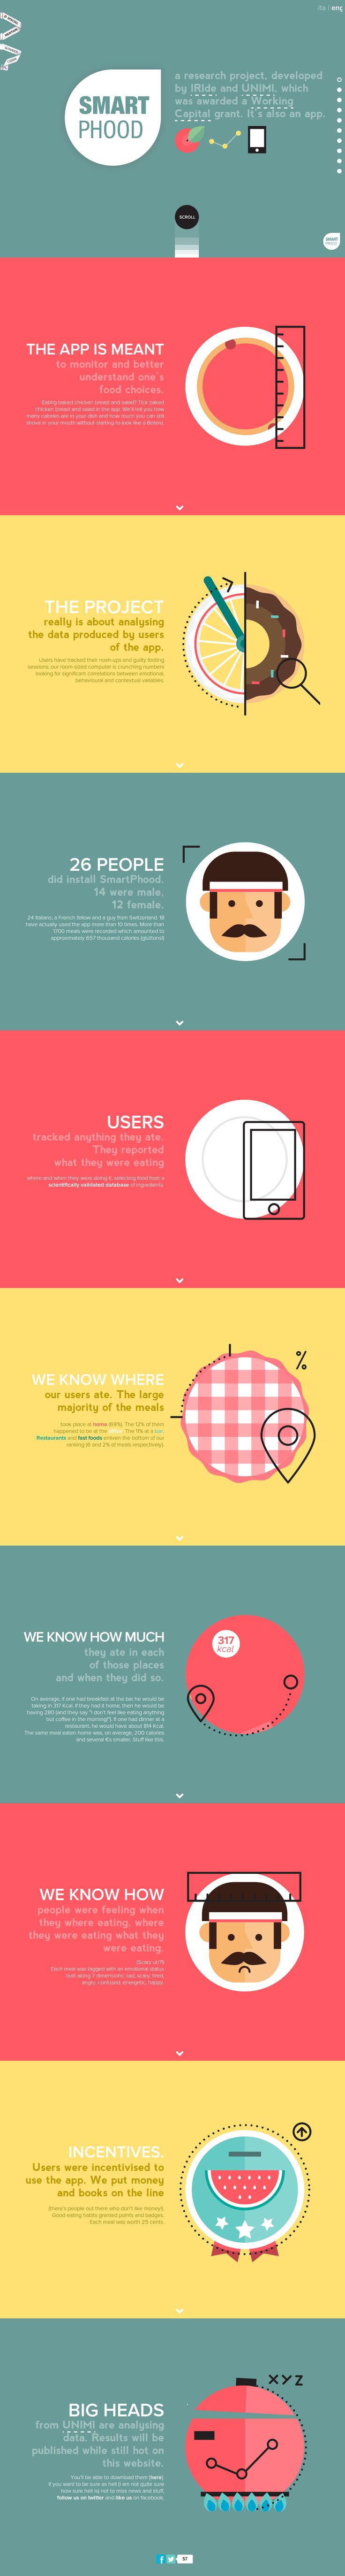 Smartphood http://www.awwwards.com/best-websites/smartphood #SinglePage…